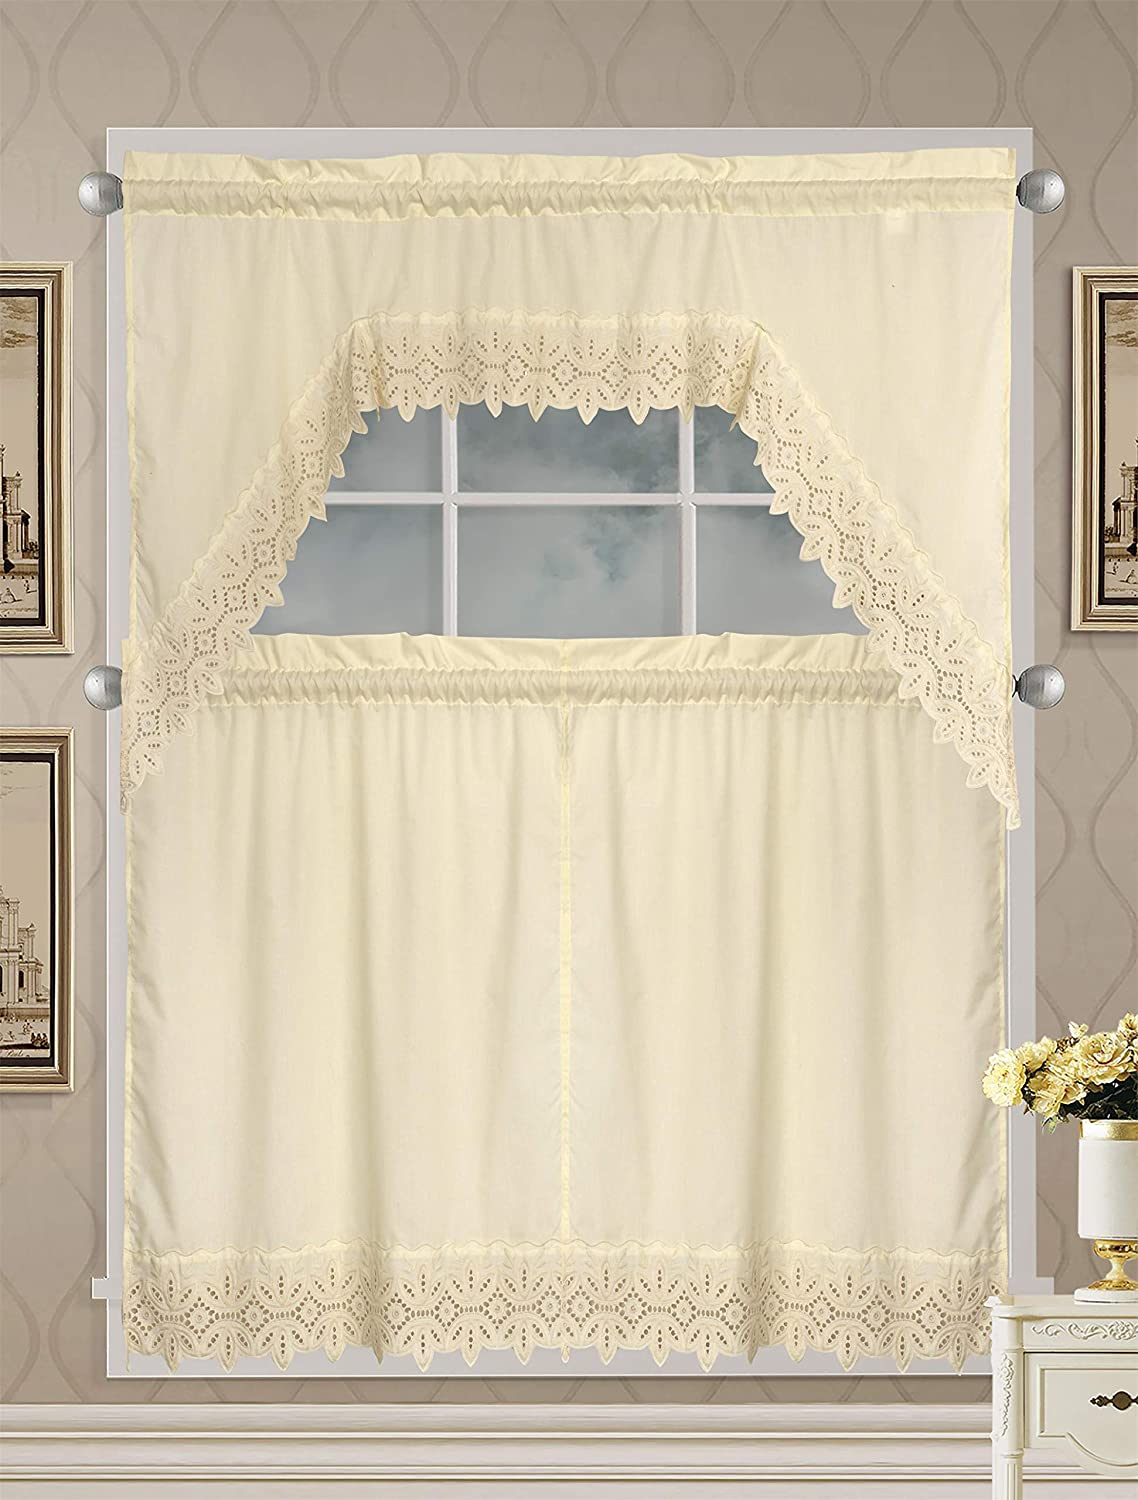 White Luxury Home Collection 3 Piece Embroidered Kitchen Window Curtain Set With 2 Tiers And 1 Valance Battenburg Treatment Sets